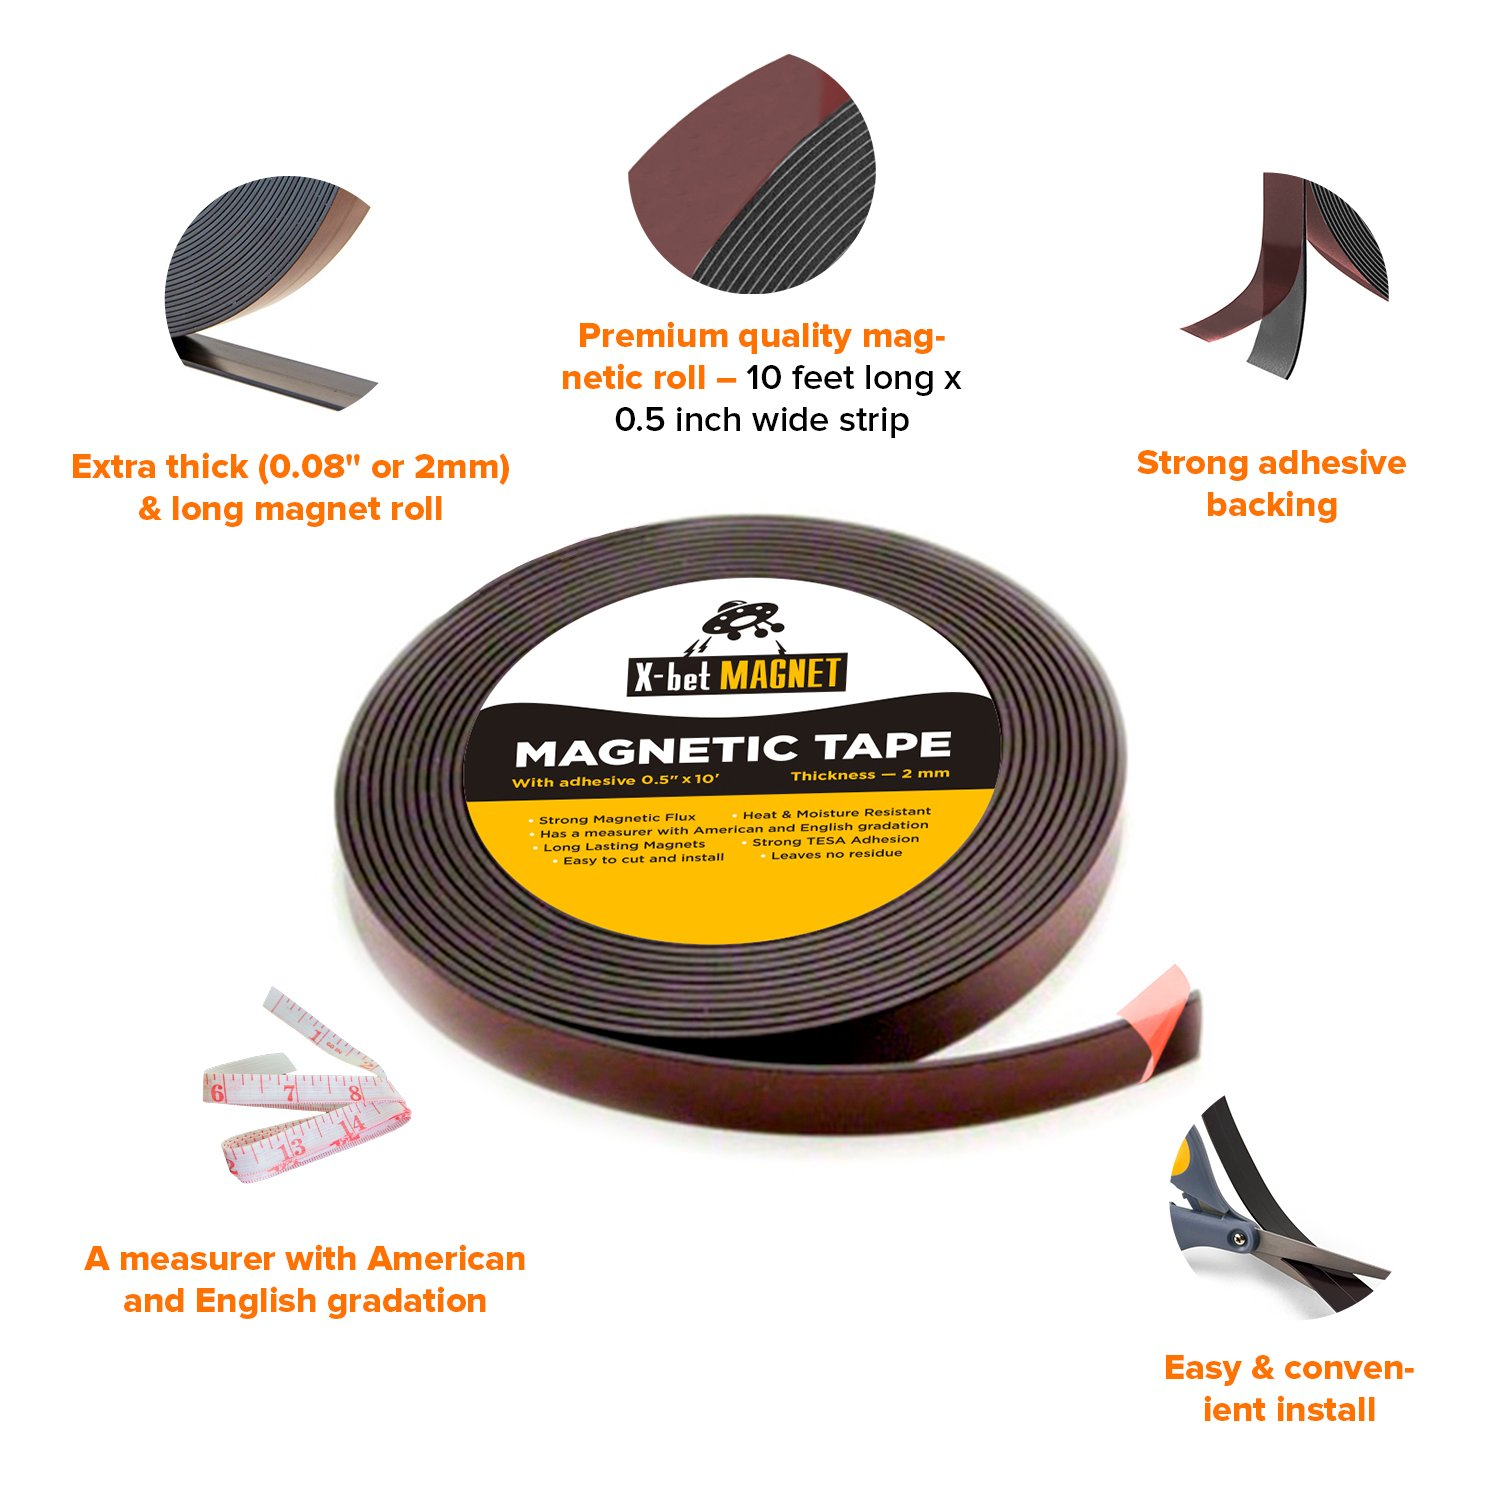 Flexible Magnetic Strip - 1/2 Inch x 10 Feet Magnetic Tape with Strong Self Adhesive - Perfect Magnetic Roll for Craft and DIY Projects - Sticky Anisotropic Magnets by X-bet MAGNET (Image #3)